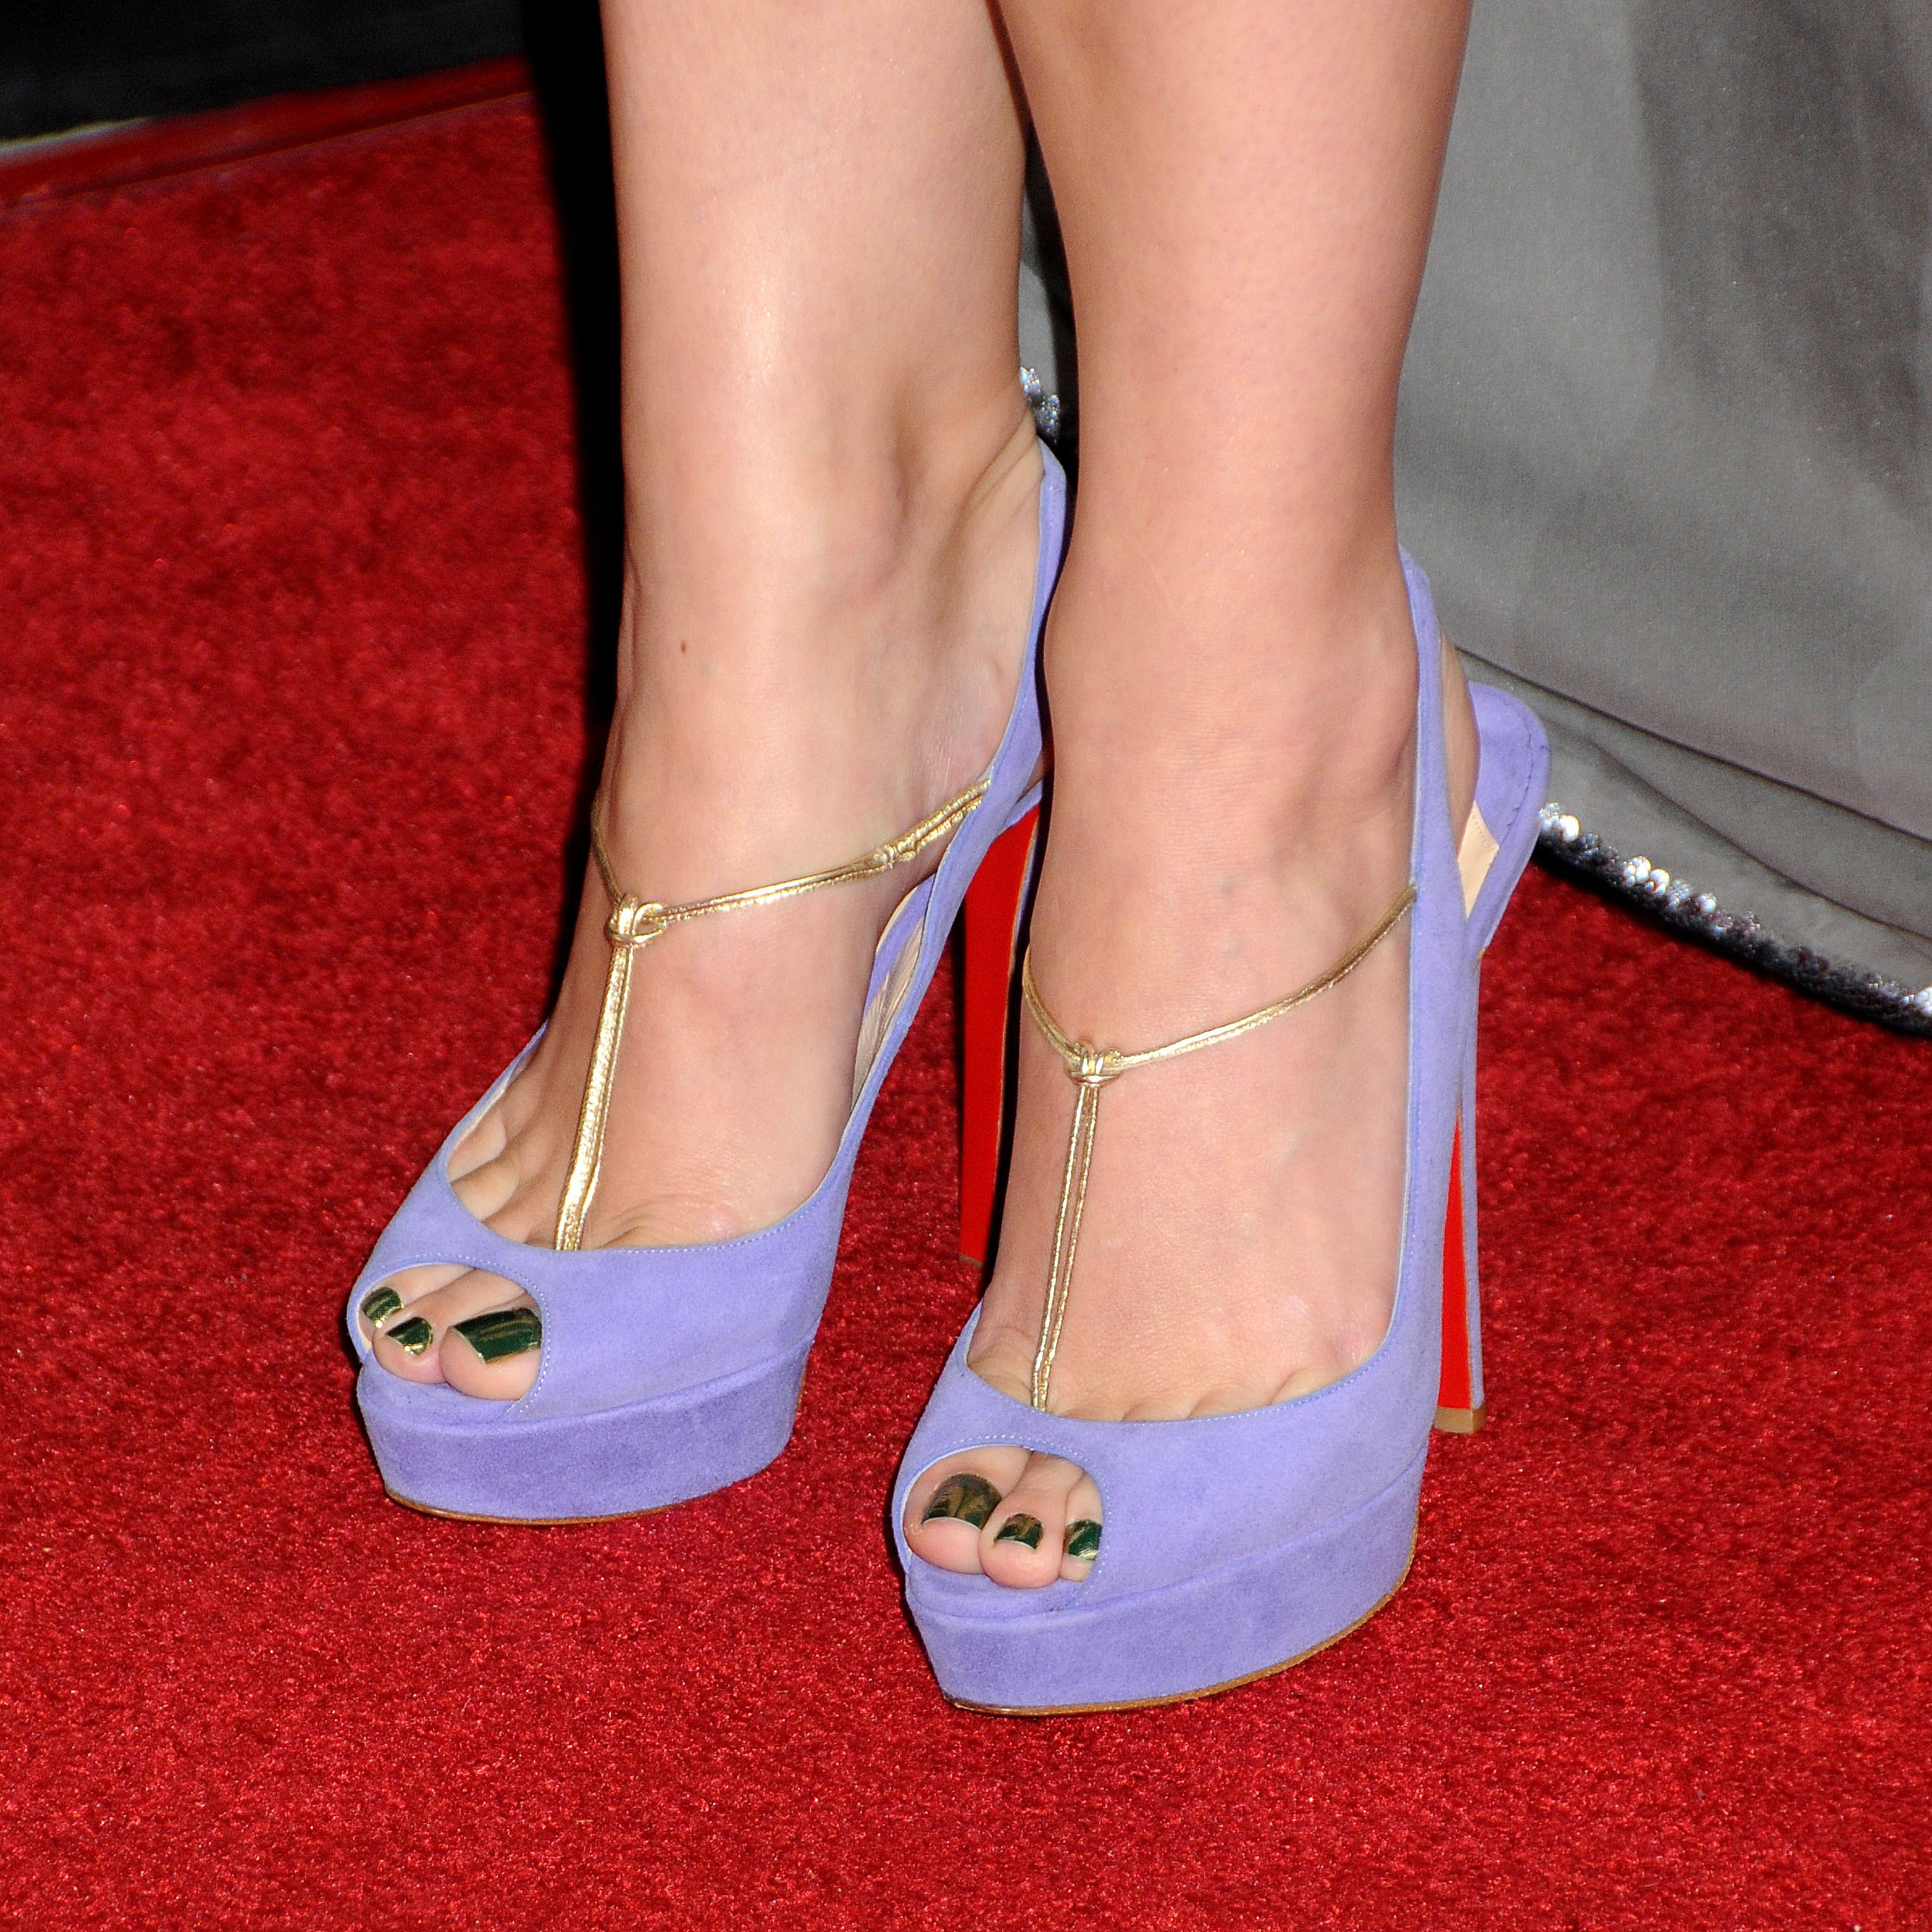 katy perry 39 s feet. Black Bedroom Furniture Sets. Home Design Ideas